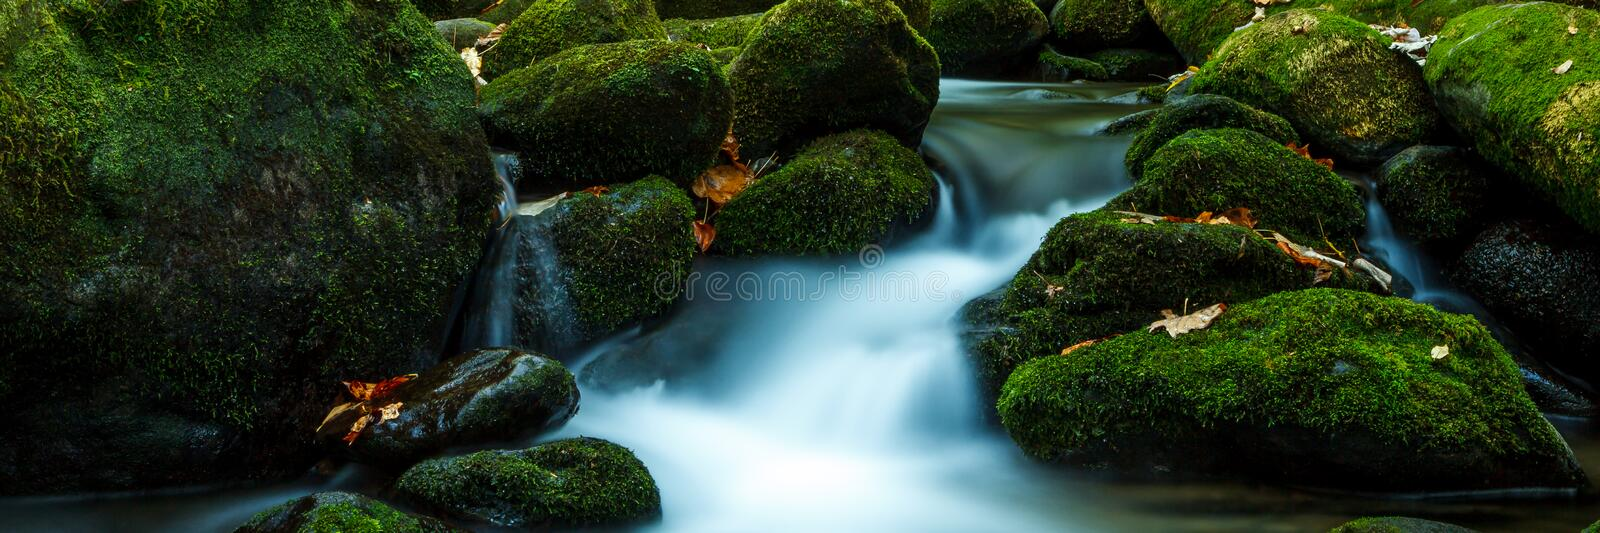 Smoky Mountain Stream. Smoky Mountain forest with waterfall stream and mossy rocks royalty free stock photography